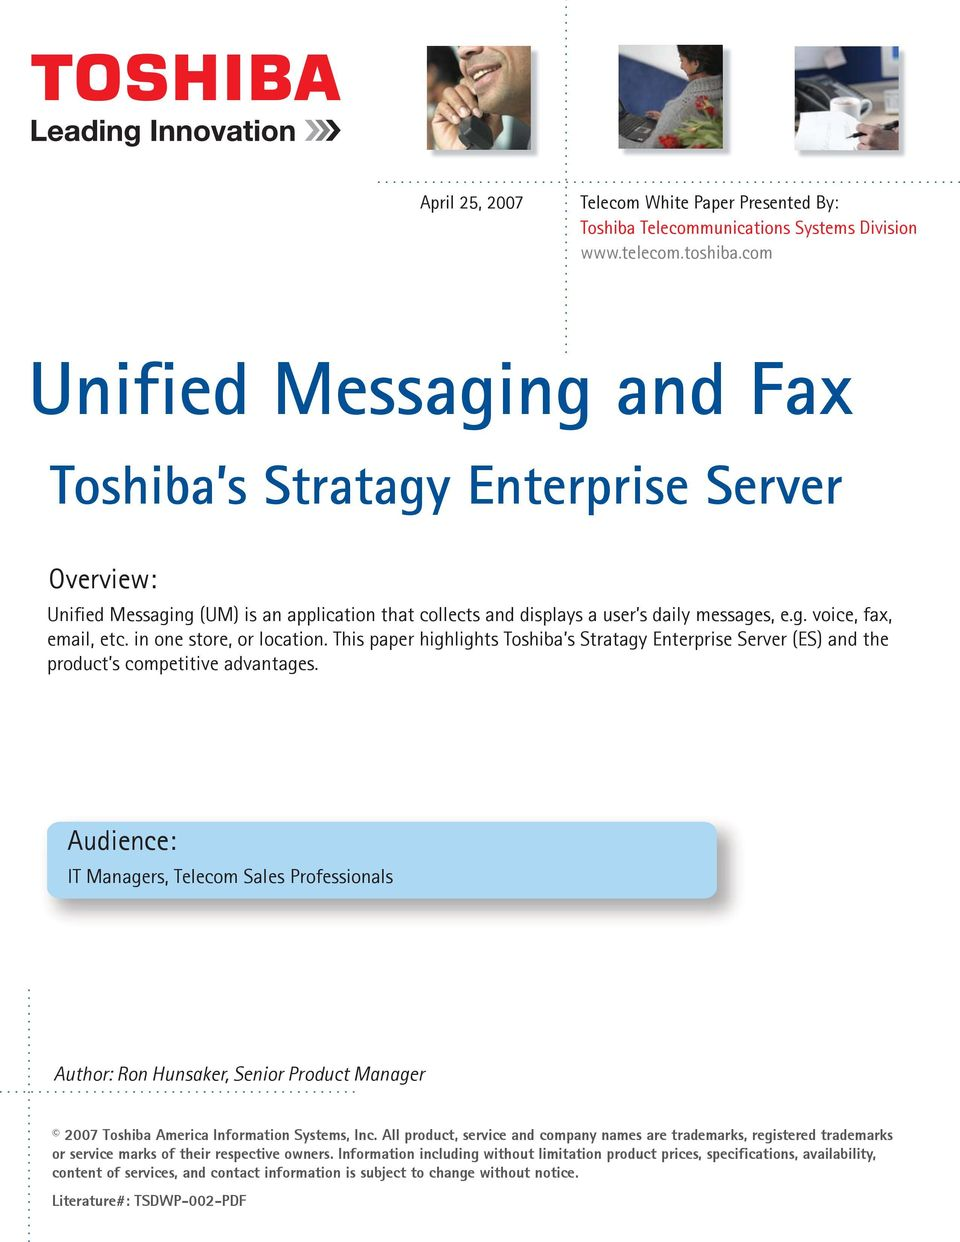 in one store, or location. This paper highlights Toshiba s Stratagy Enterprise Server (ES) and the product s competitive advantages.